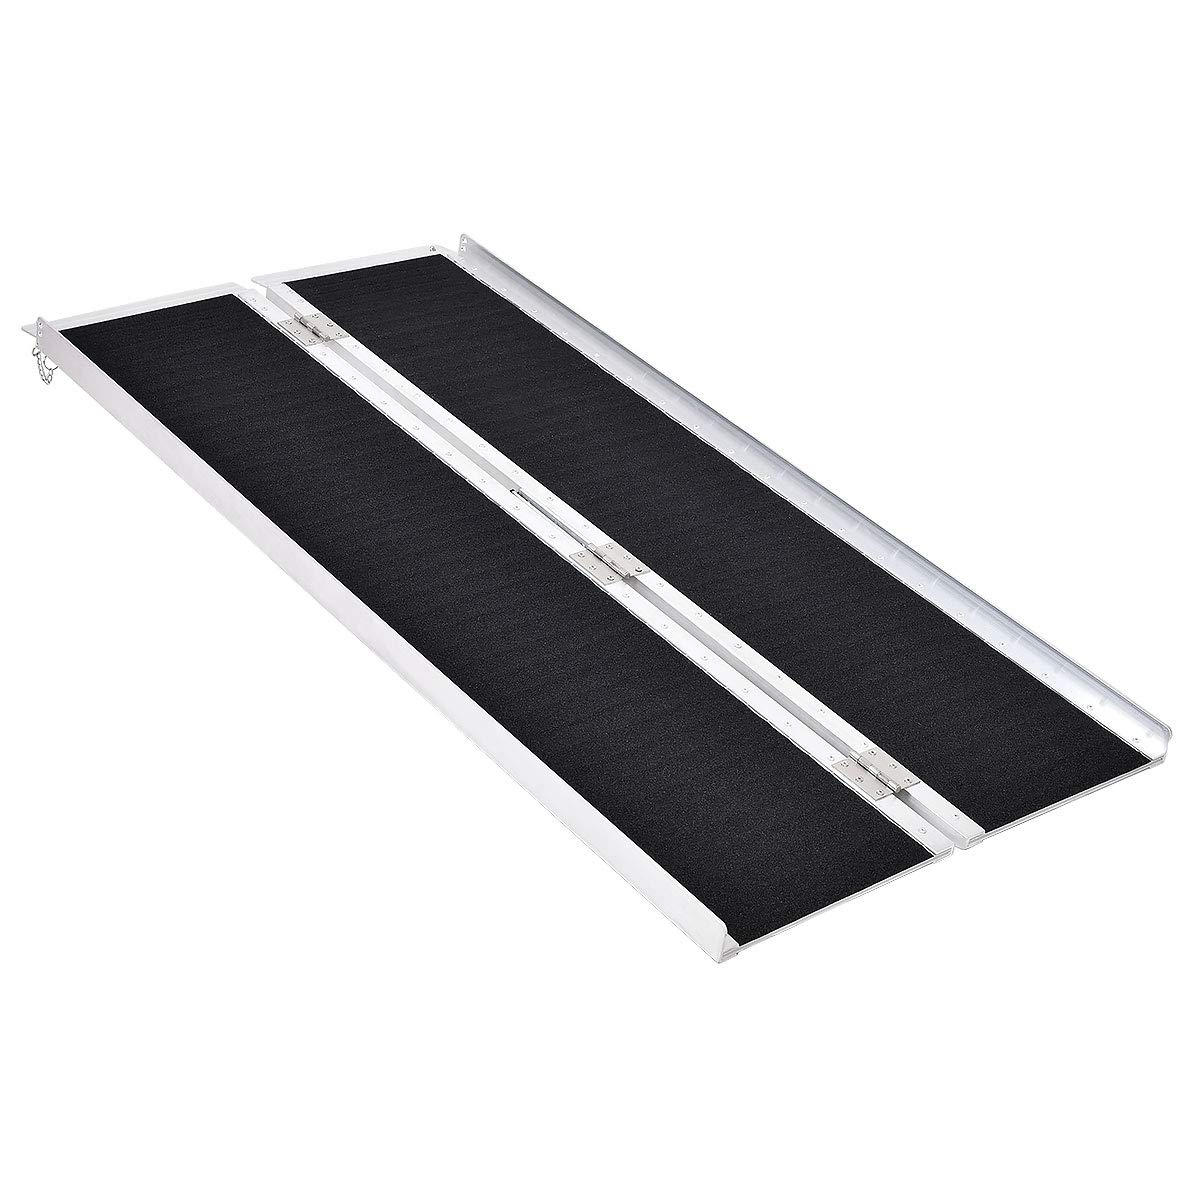 Goplus® Multi-Fold Aluminum 5' Non-Skid Wheelchair Ramp Mobility Scooter Mobility Ramp (5' x 30) by Goplus